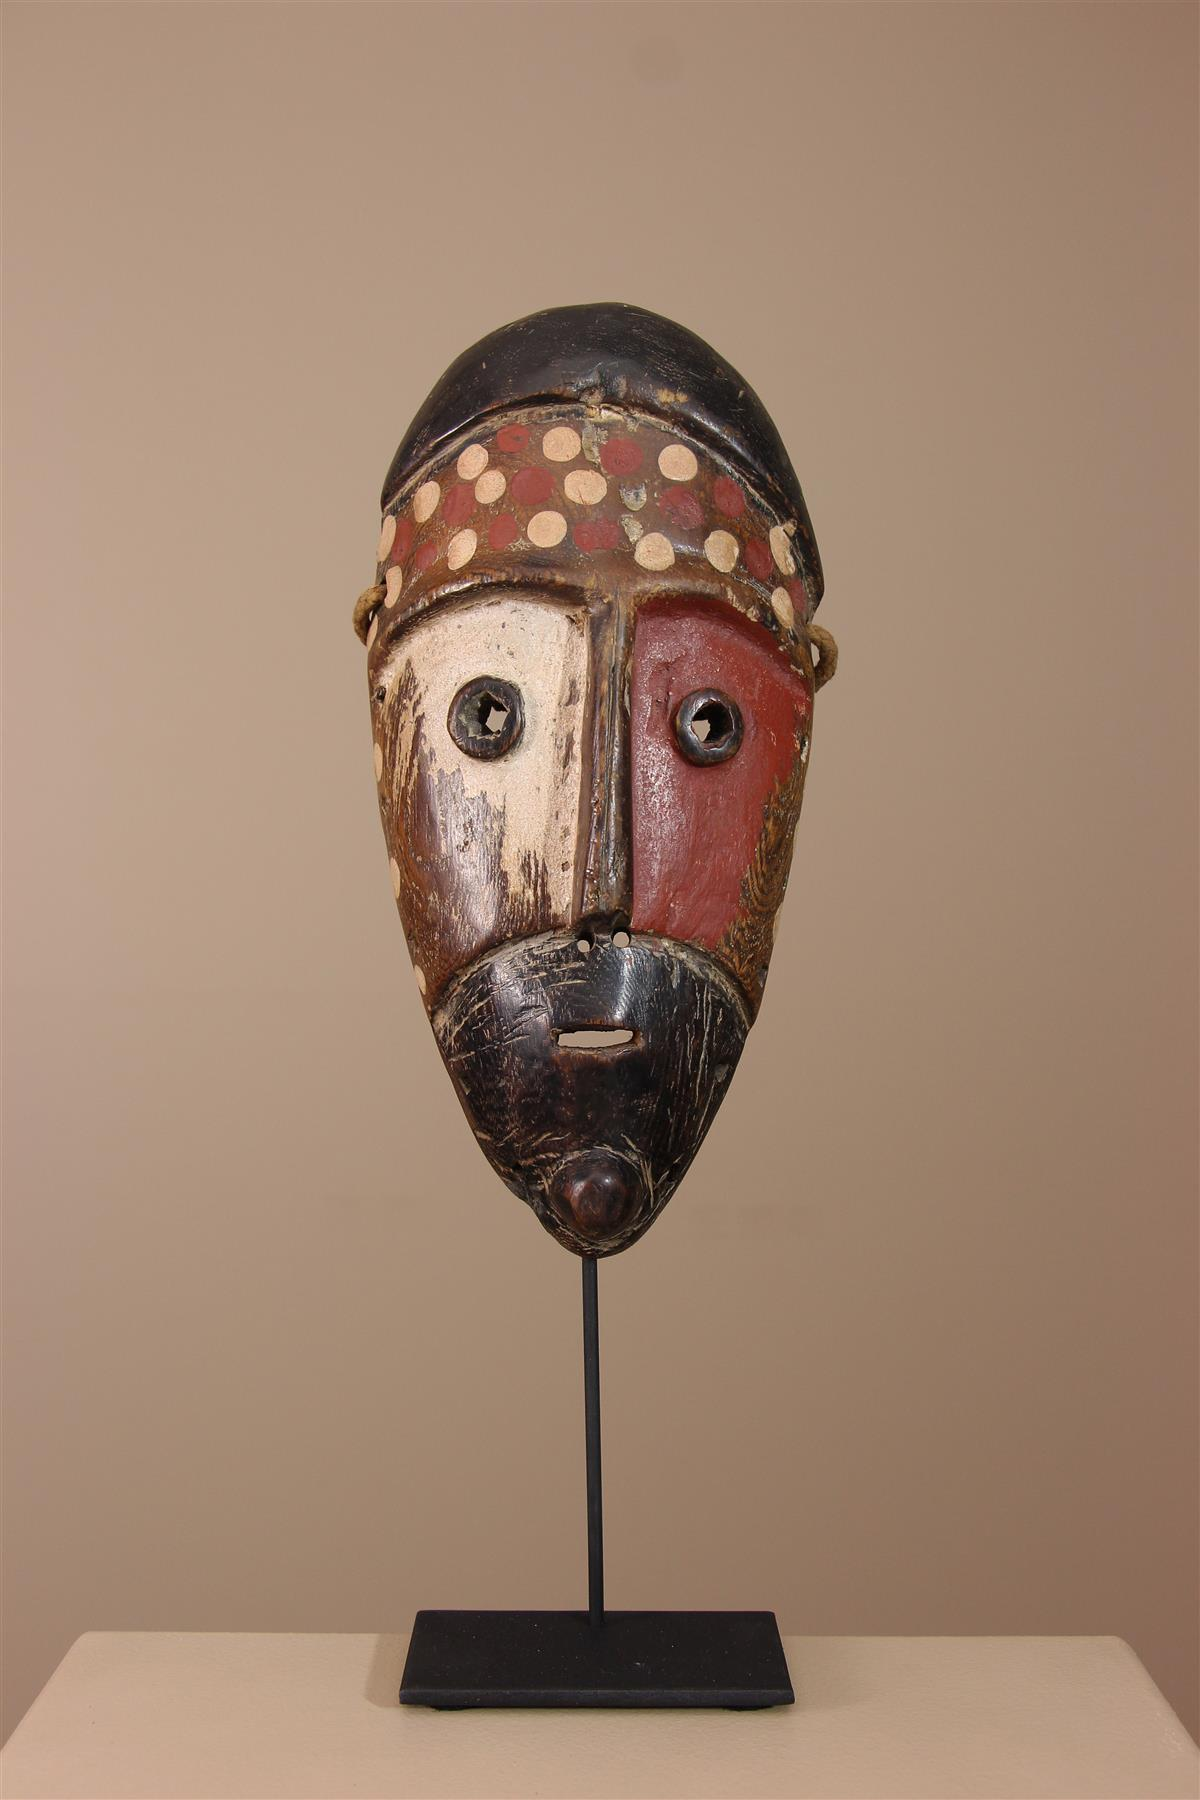 Masque Metoko - Déco africaine - Art africain traditionnel